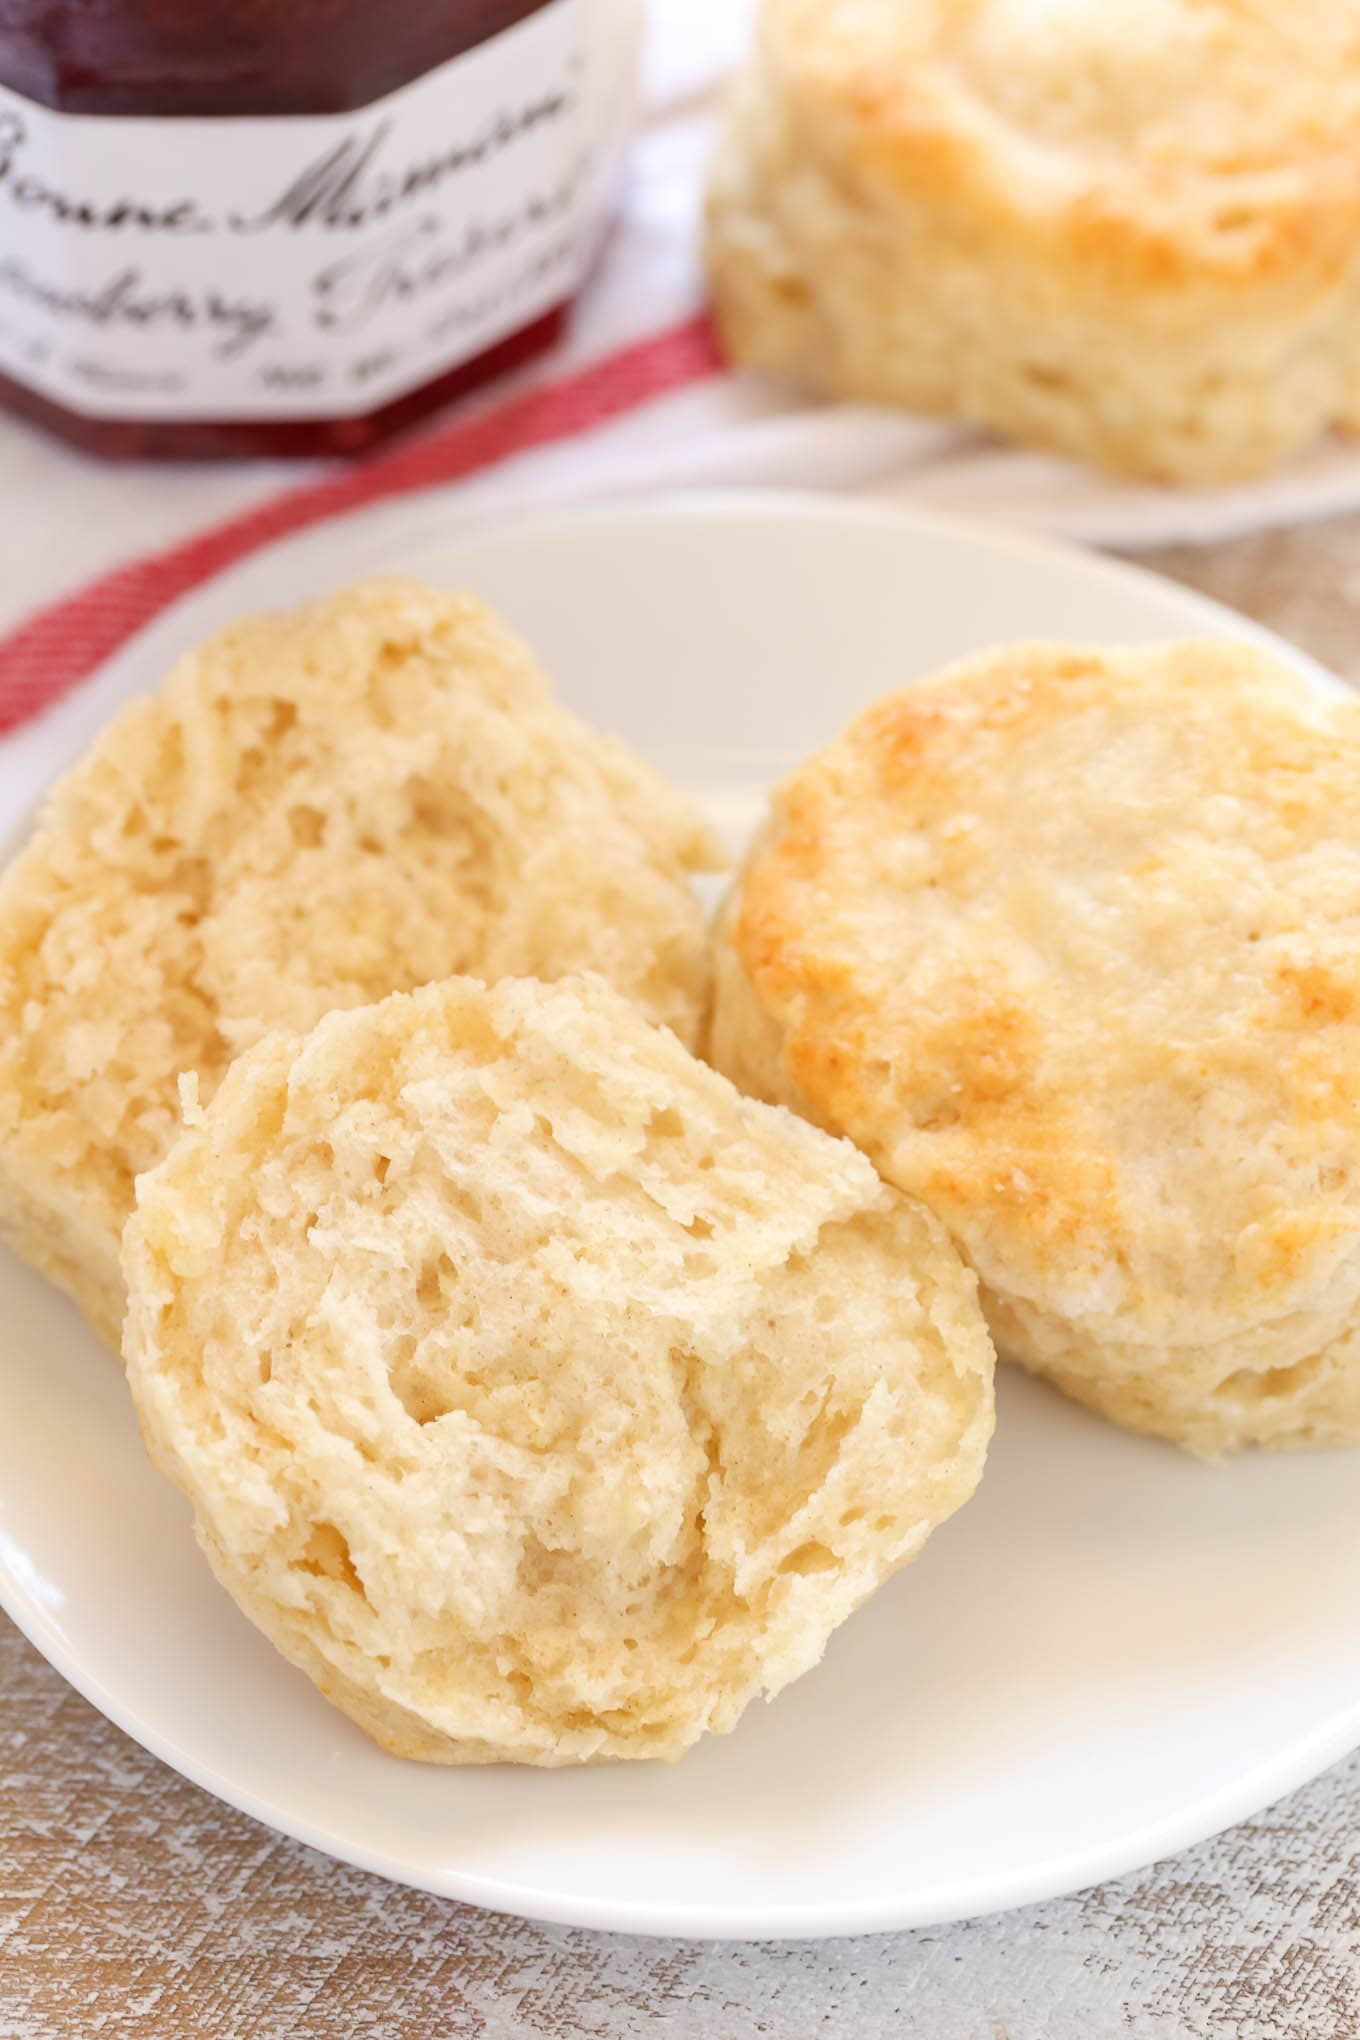 These Easy Buttermilk Biscuits are incredibly soft, tall, flaky, and buttery. Serve these with some jam, gravy, or your topping of choice for an easy and delicious breakfast!